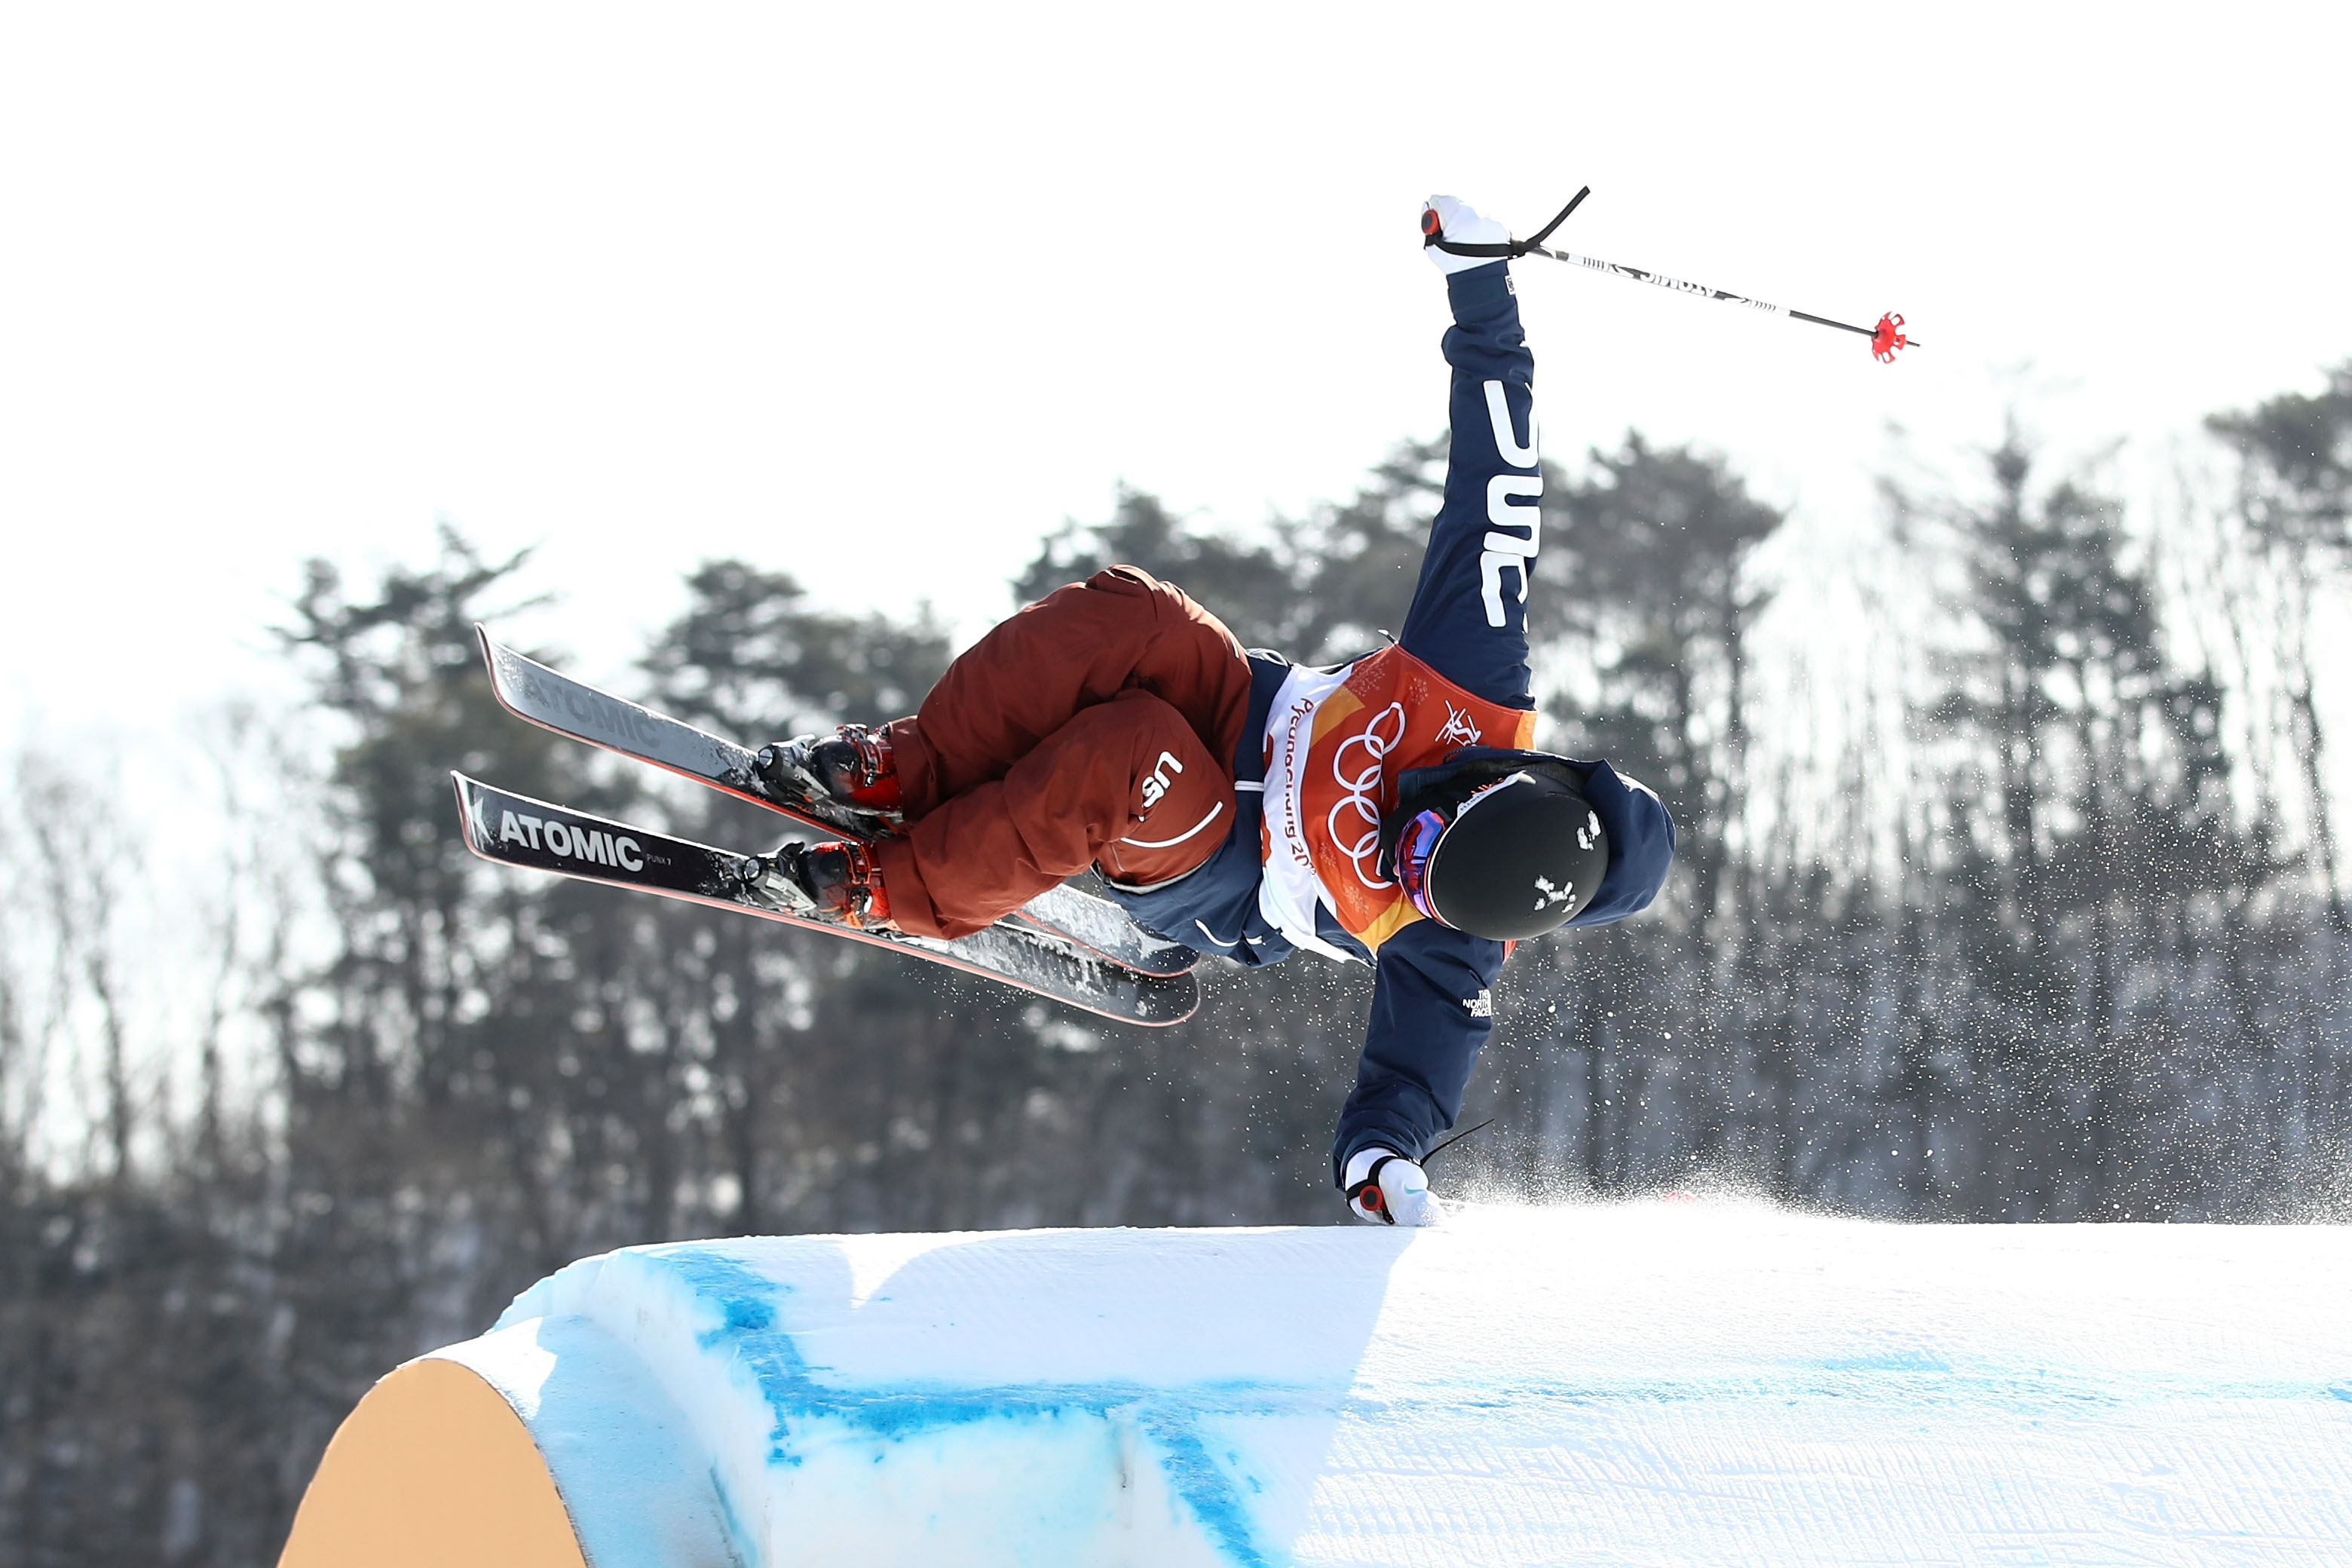 Gus Kenworthy of the United States competes during the men's ski slopestyle qualification at the PyeongChang 2018 Winter Olympic Games at Phoenix Snow Park on Feb. 18, 2018 in Pyeongchang-gun, South Korea.